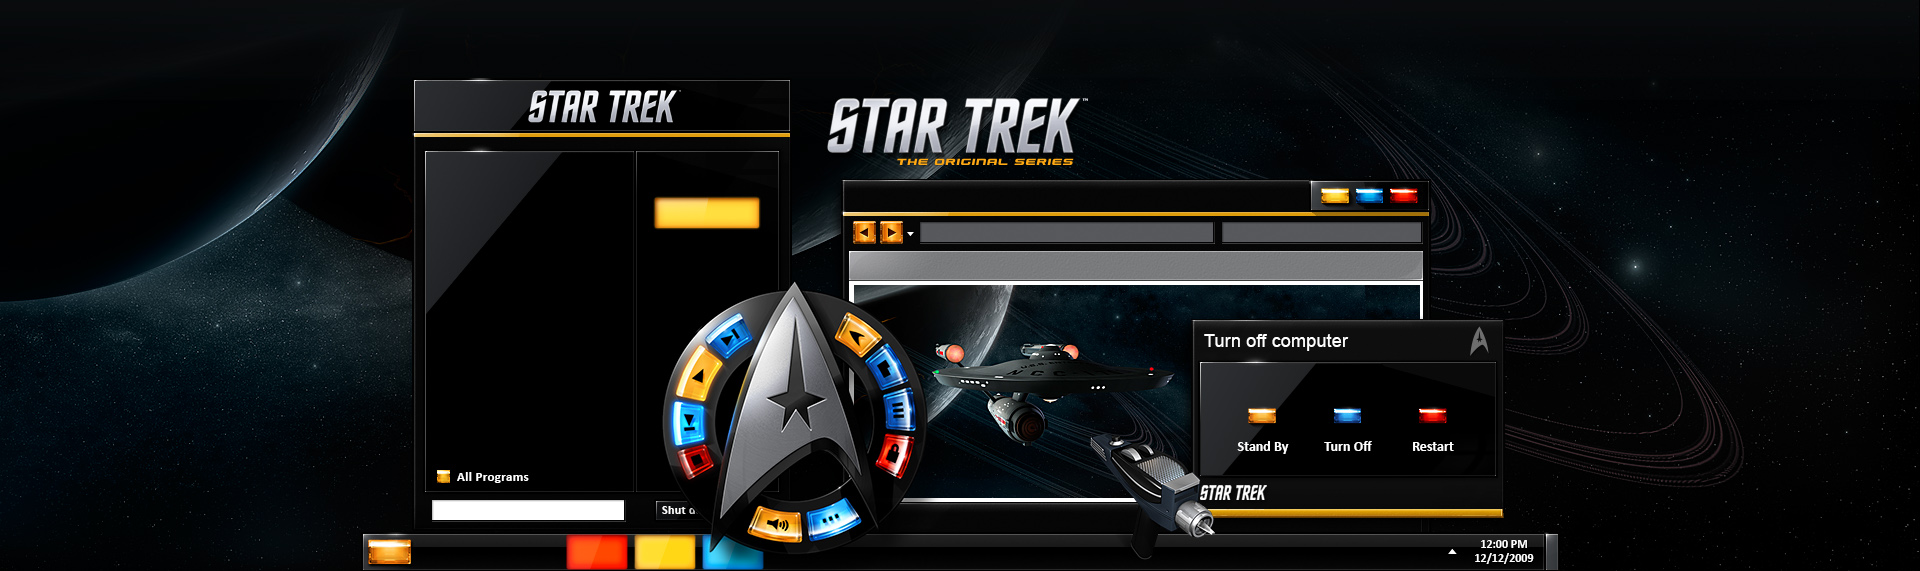 "STAR TREK: The Original Series  Client: Under License from CBS Consumer Products)  Powered by The Skins Factory's advanced Windows desktop solution, Hyperdesk, STAR TREK: The Original Series is a Starfleet & Federation-approved set of 3 Windows 7 / XP / Vista desktop themes, that are every STAR TREK fan's dream. From the ""beaming"" in audio remote, StarFleet division-based themes, the incredibly cool STAR TREK icons, and custom wallpapers, you'll realize this was made by fans for fans. TM & 2009. CBS Studios Inc."